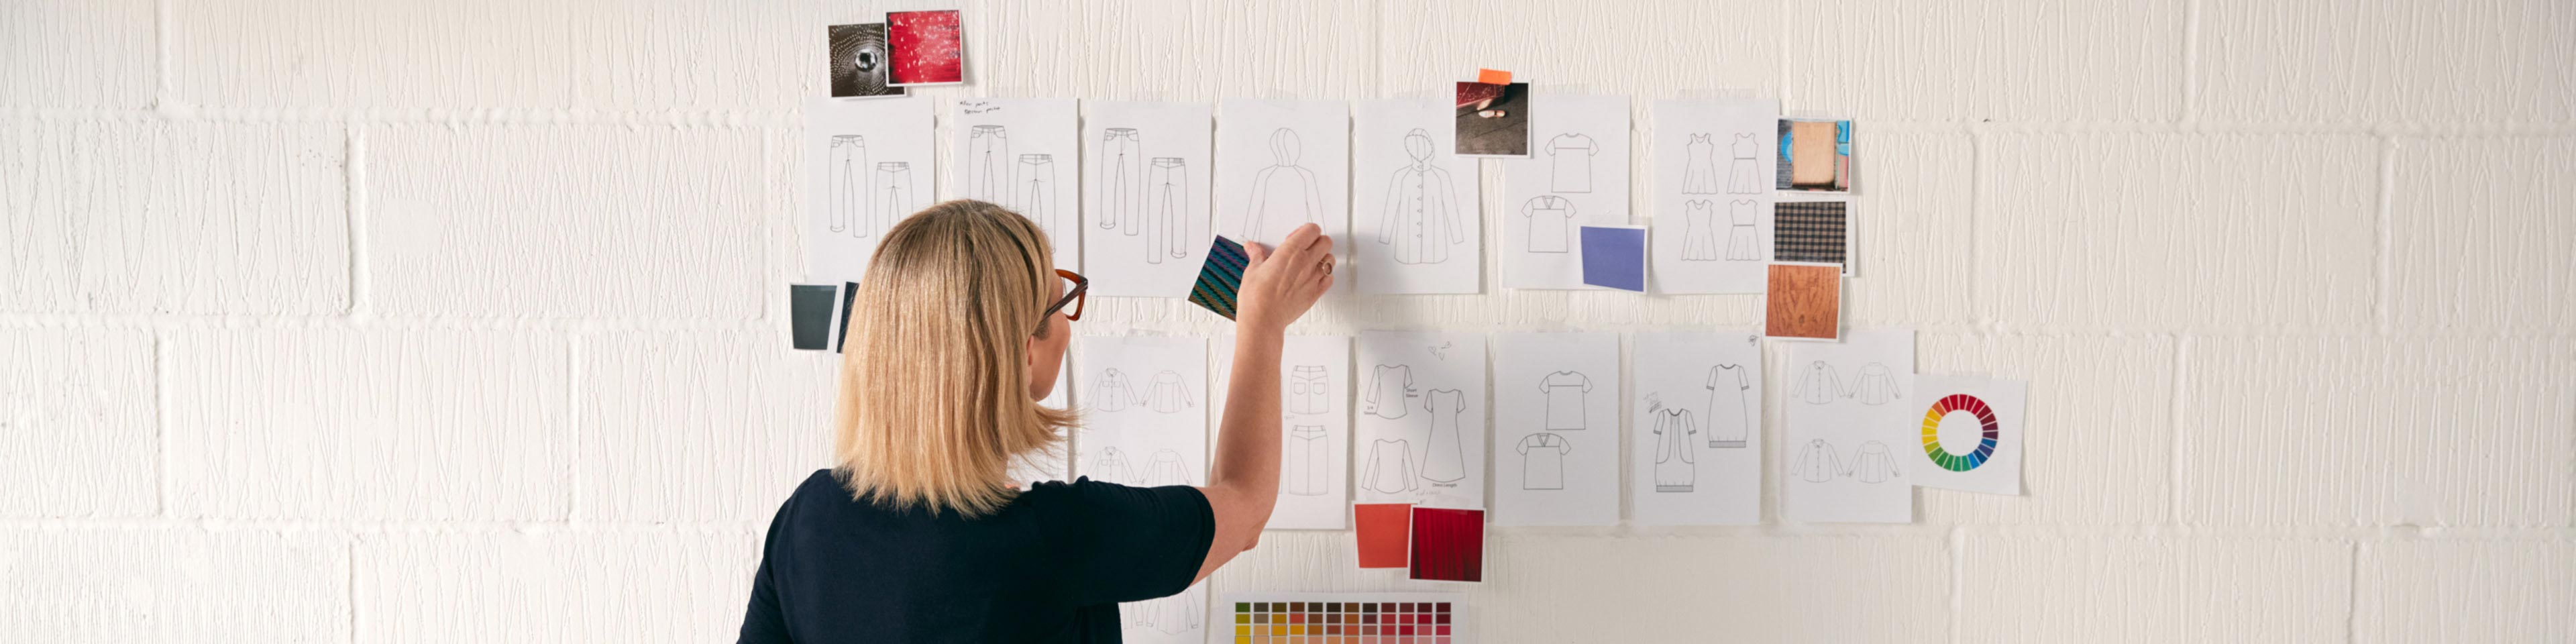 woman in advertising with sticky notes